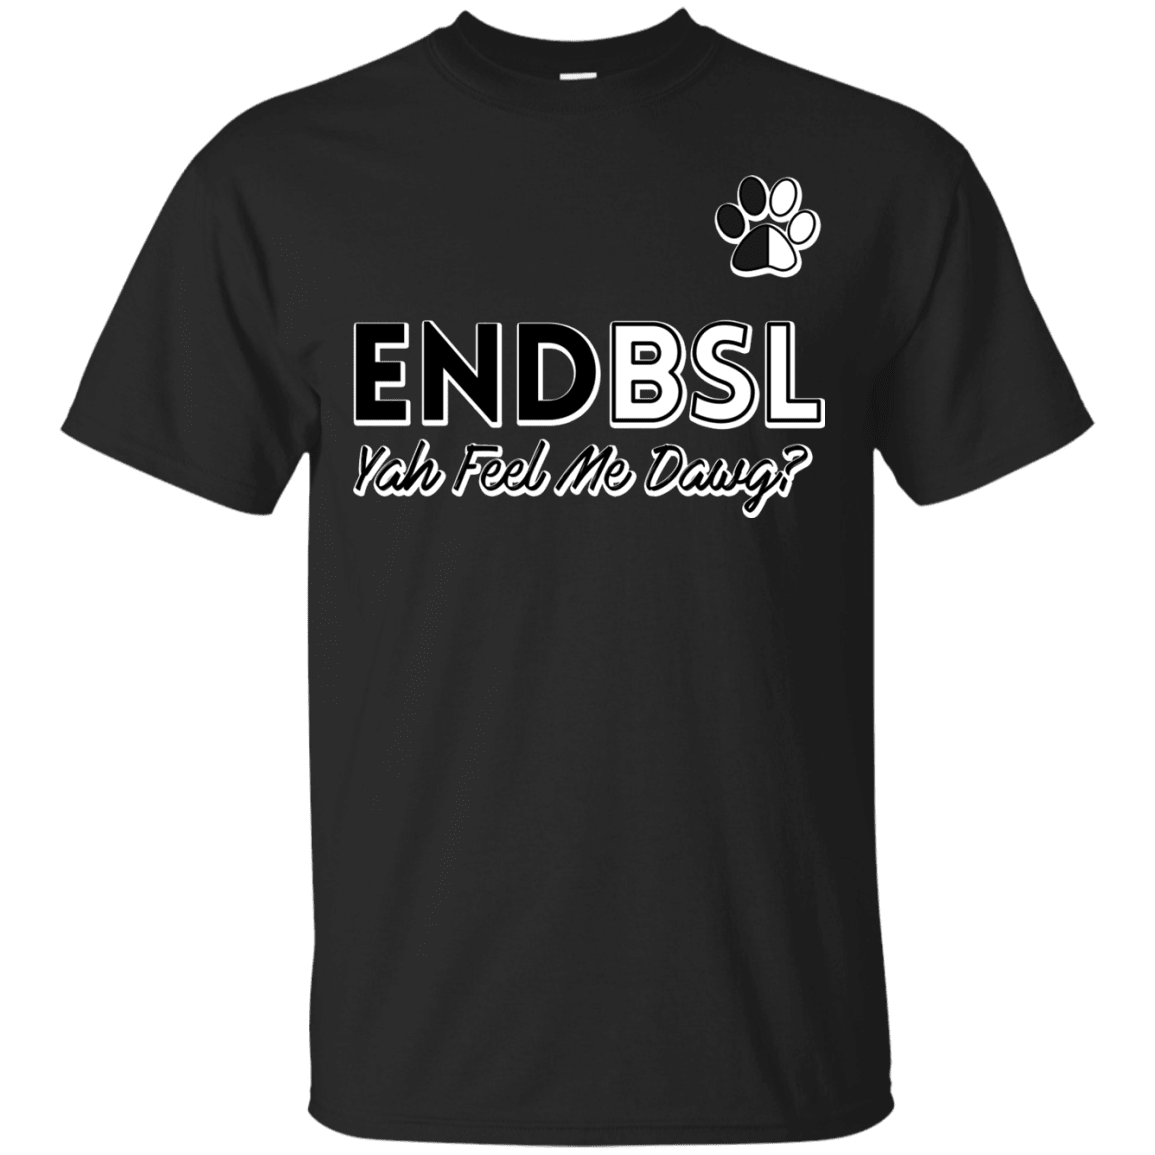 End BSL - G200 Gildan Ultra Cotton T-Shirt Black Small - Little Pit Shop